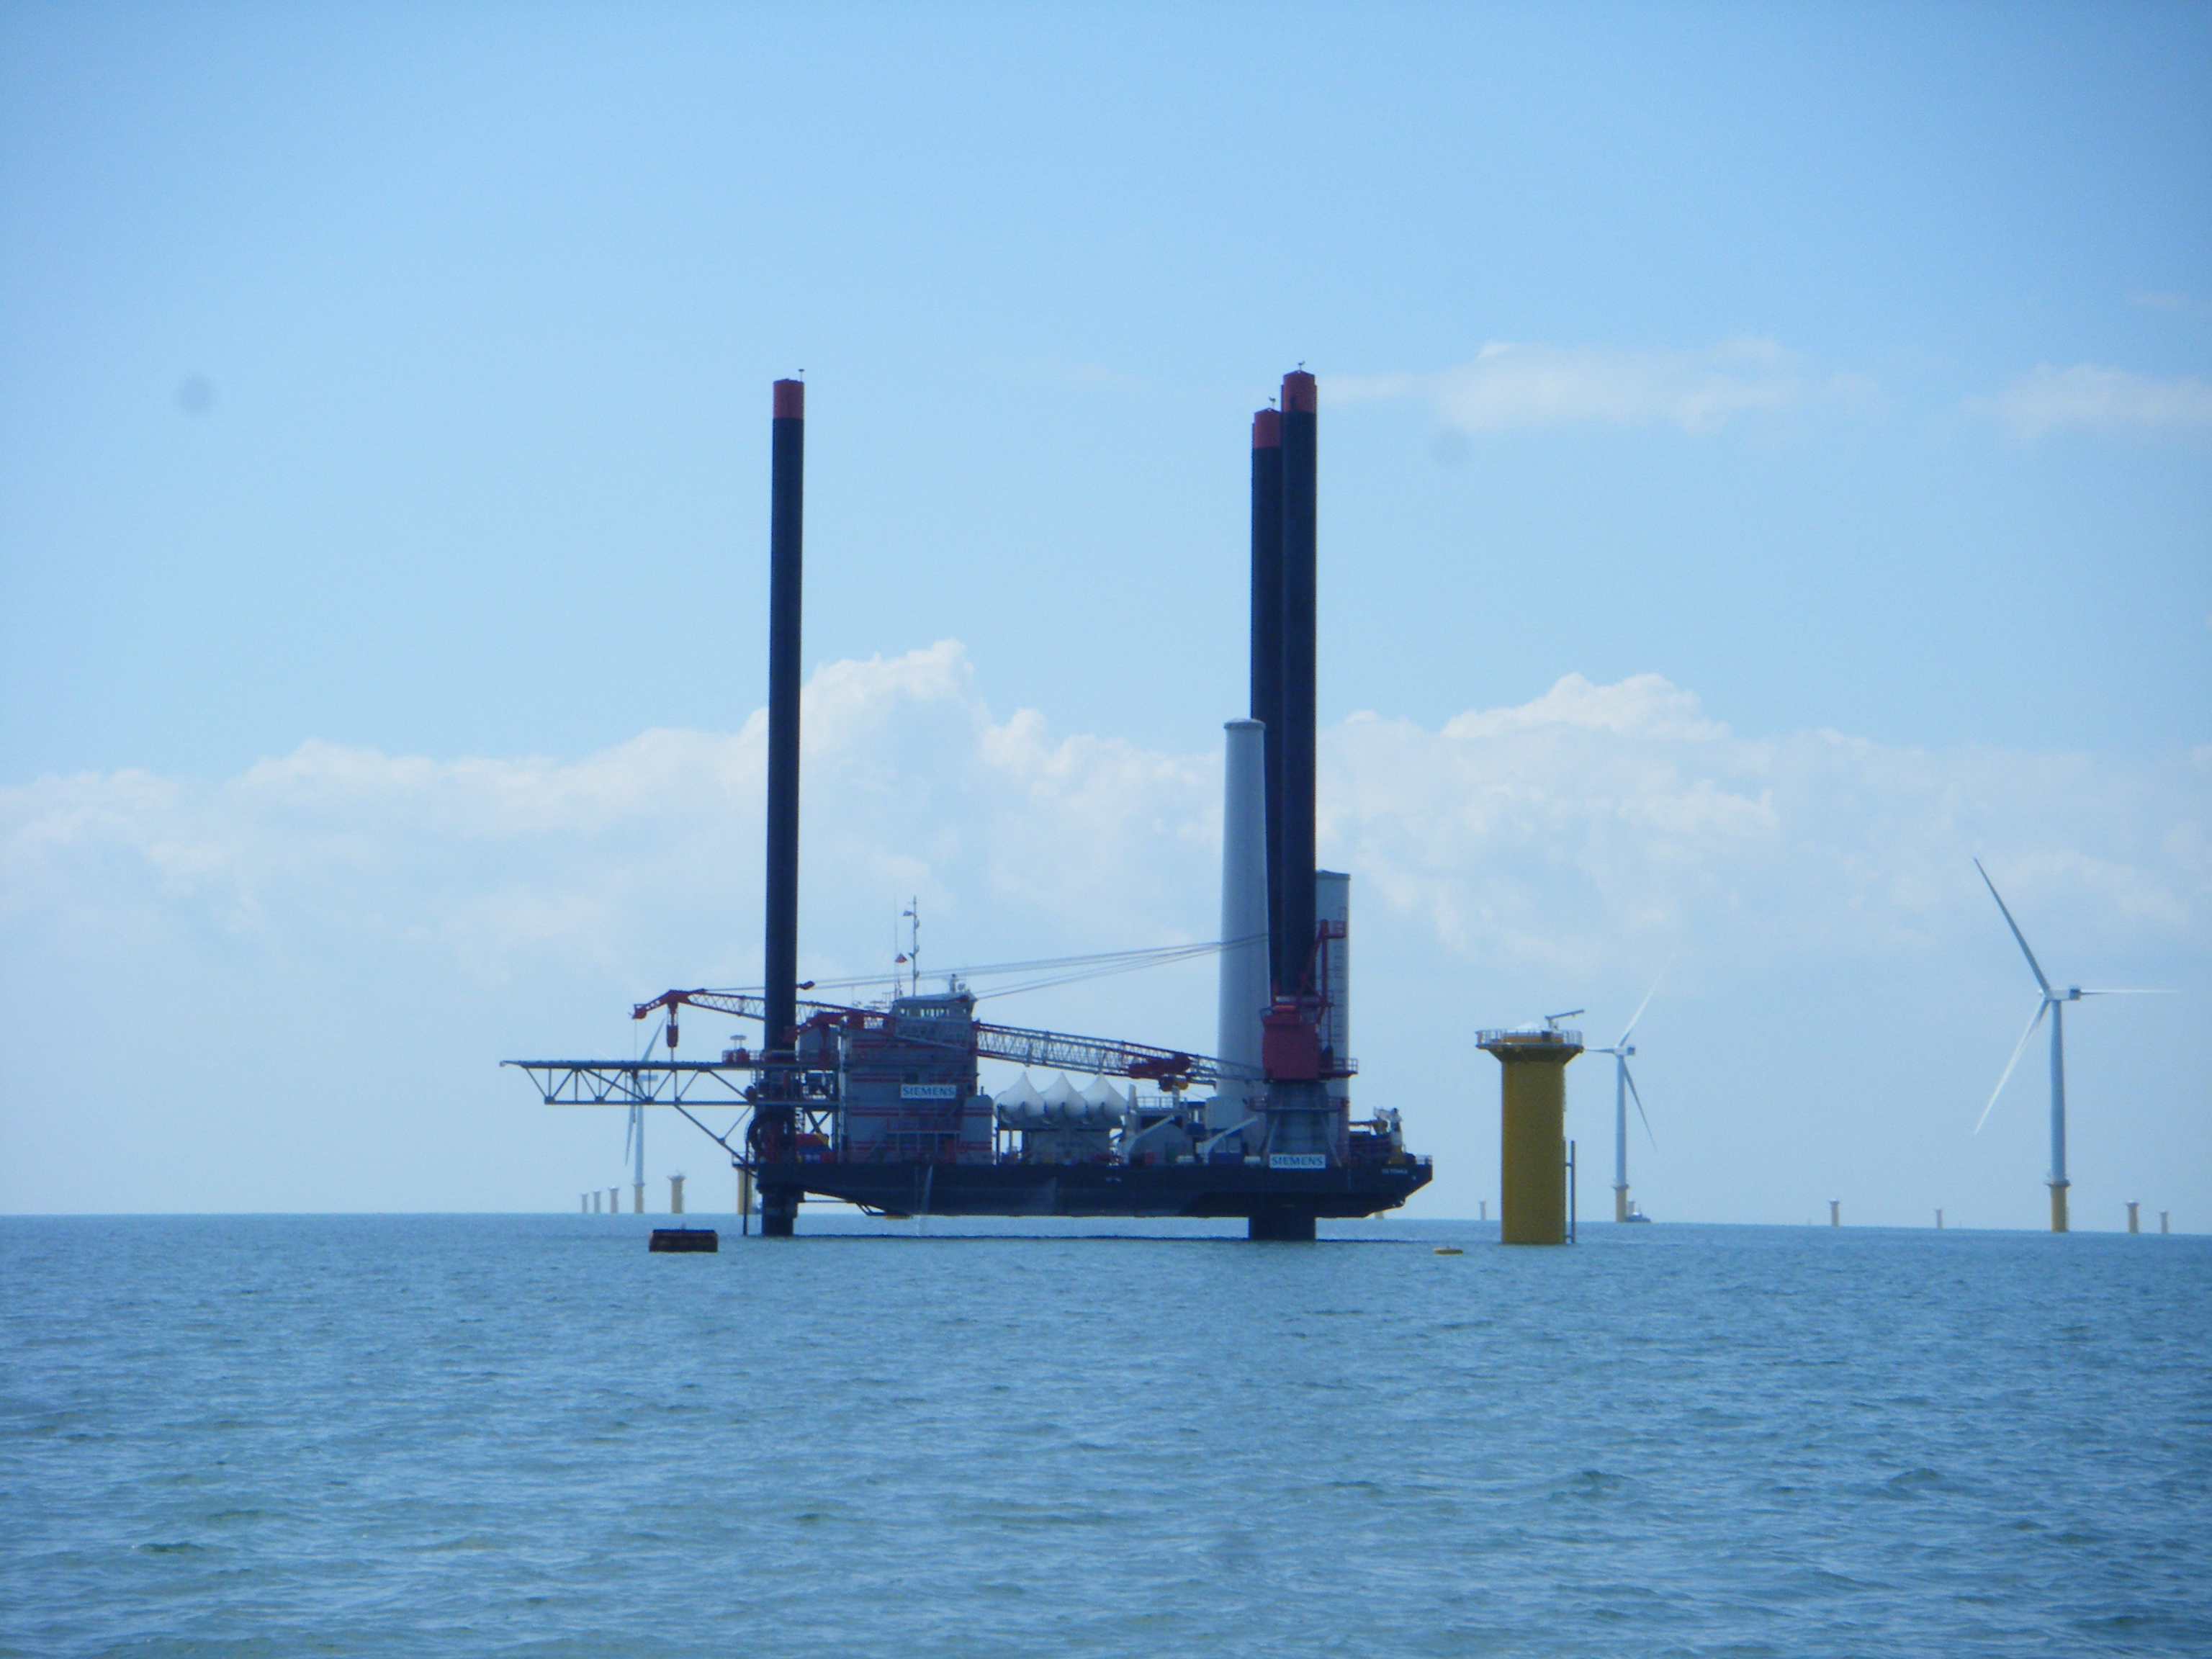 AGC - off-shore construction support